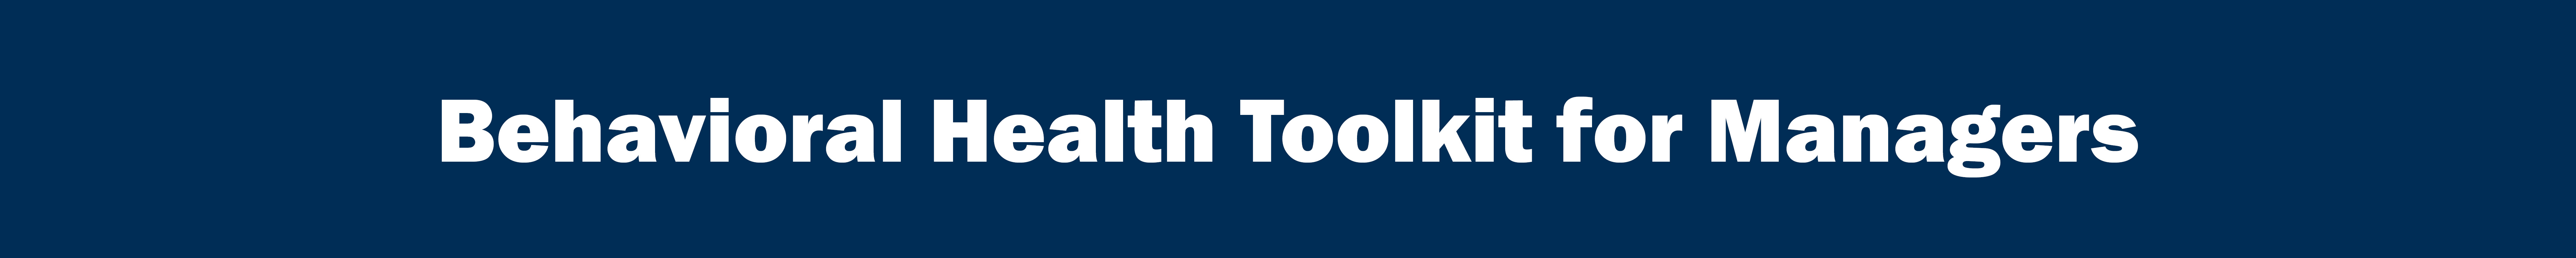 Behavioral Health Toolkit for Managers